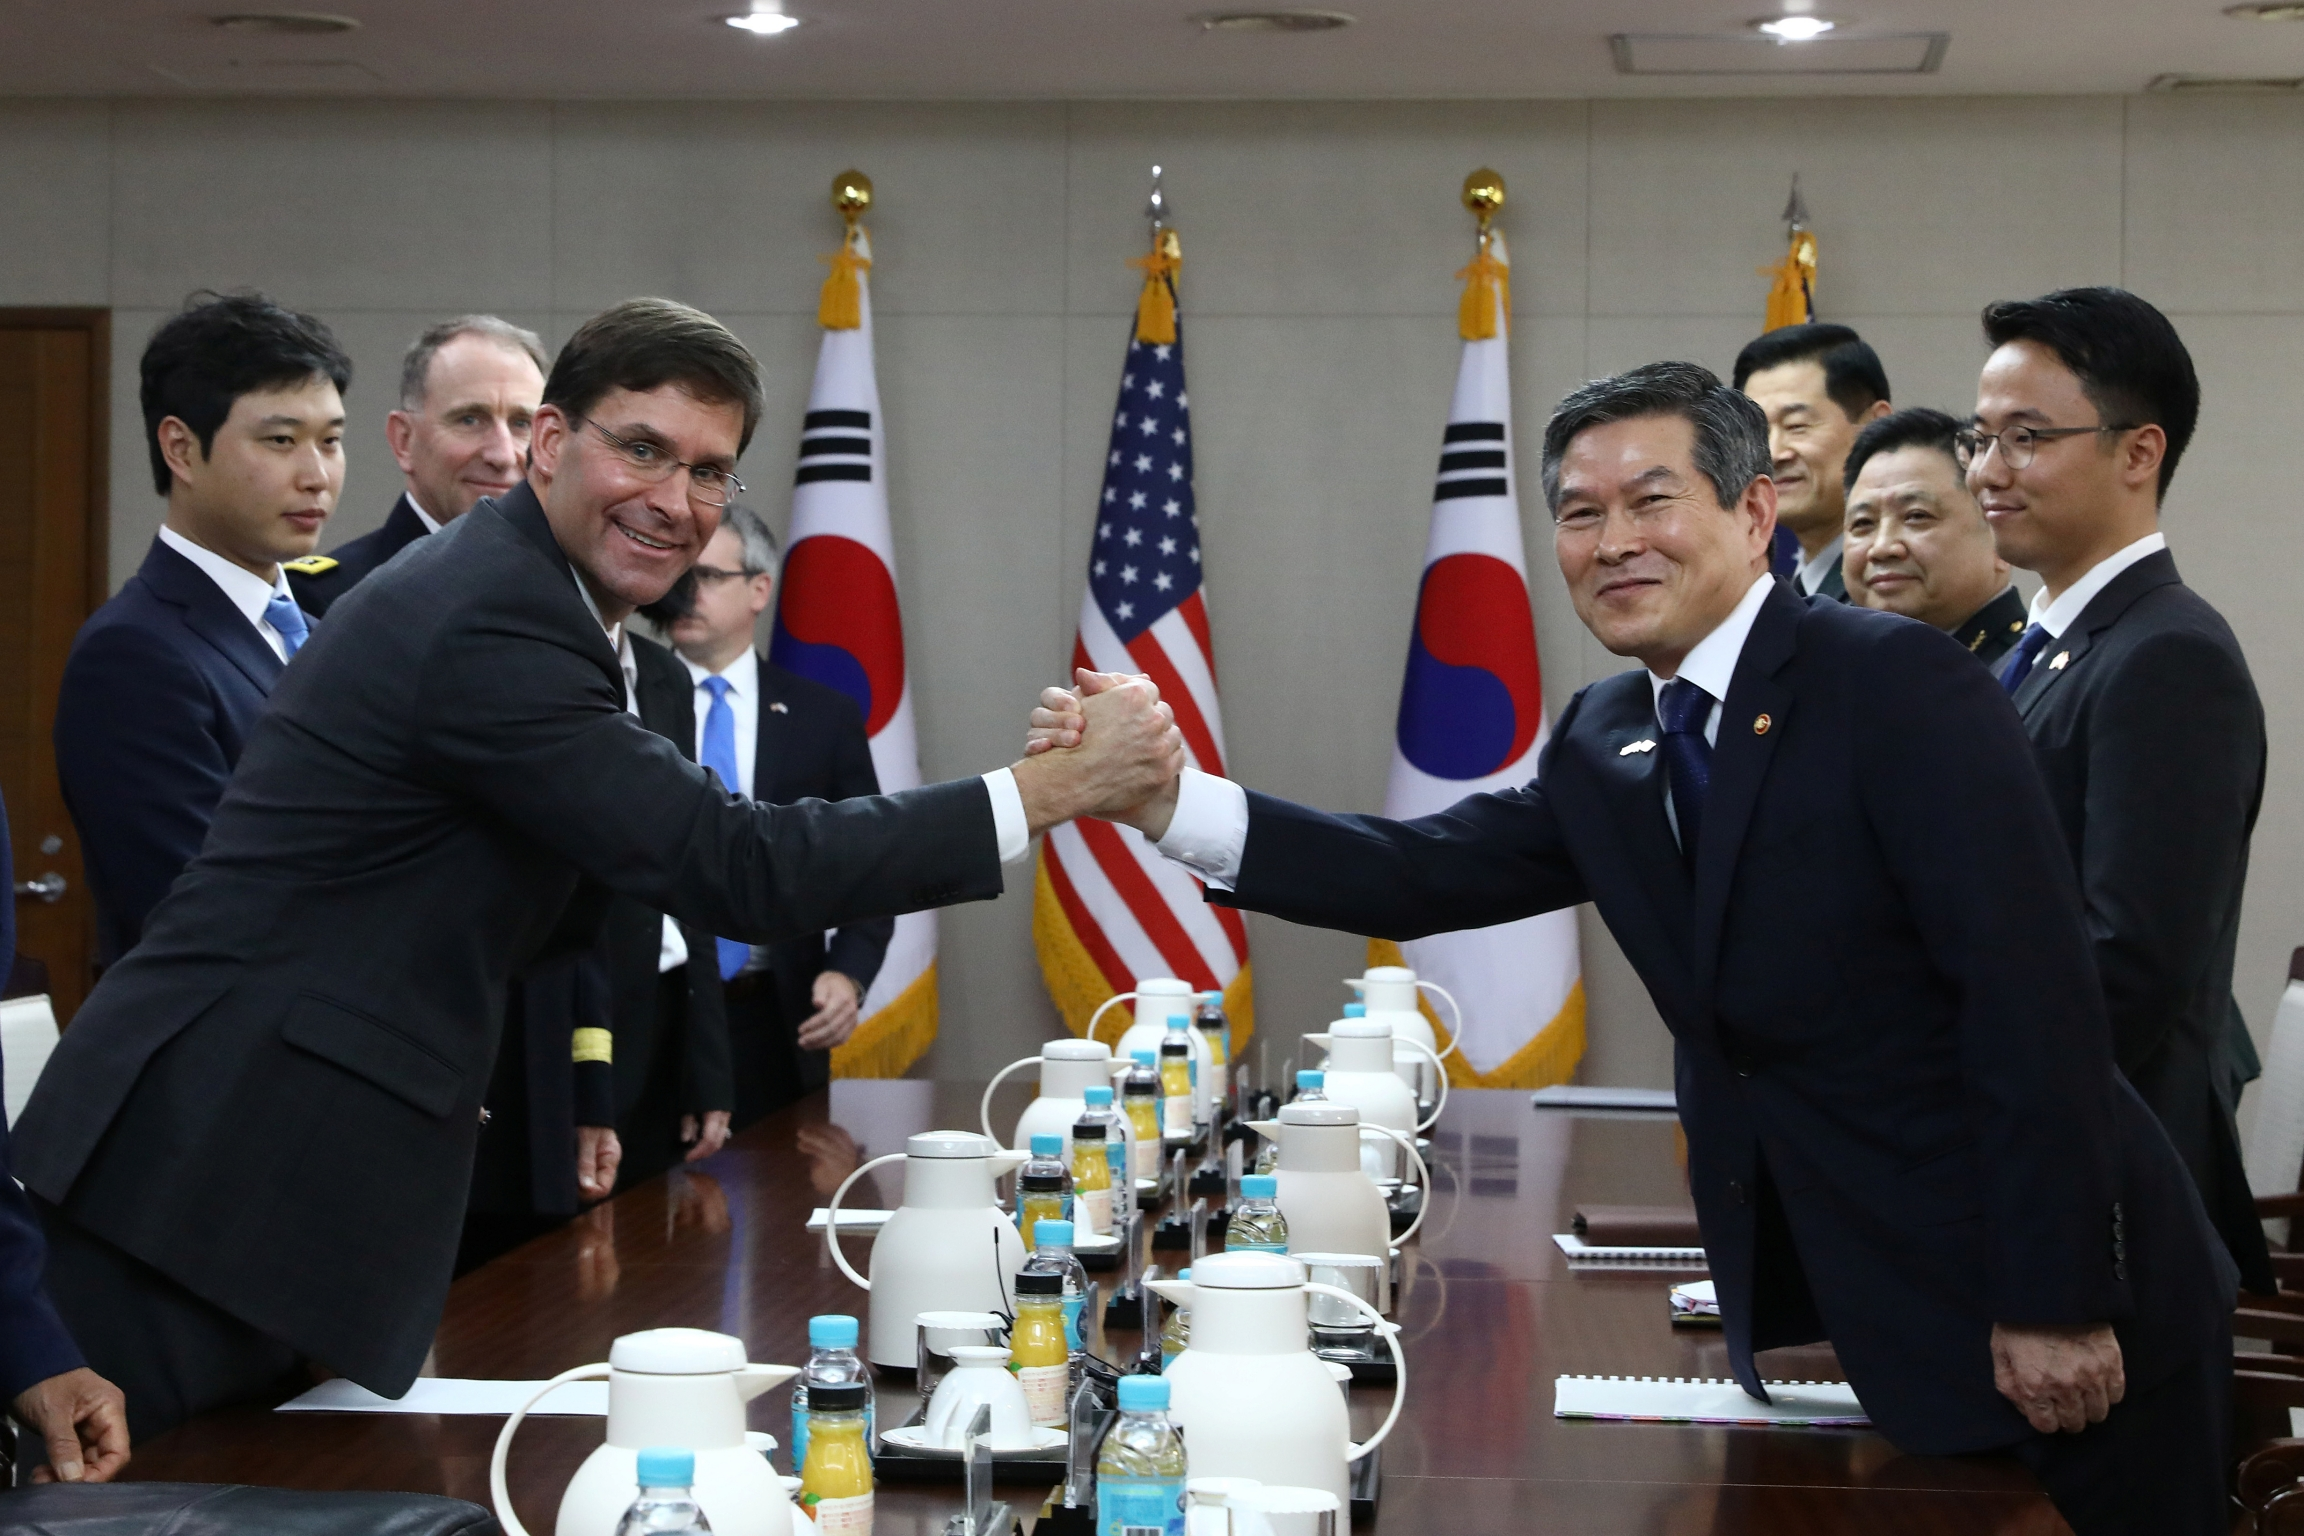 President Moon Jae-in shakes hands with US military wearing uniforms across a table